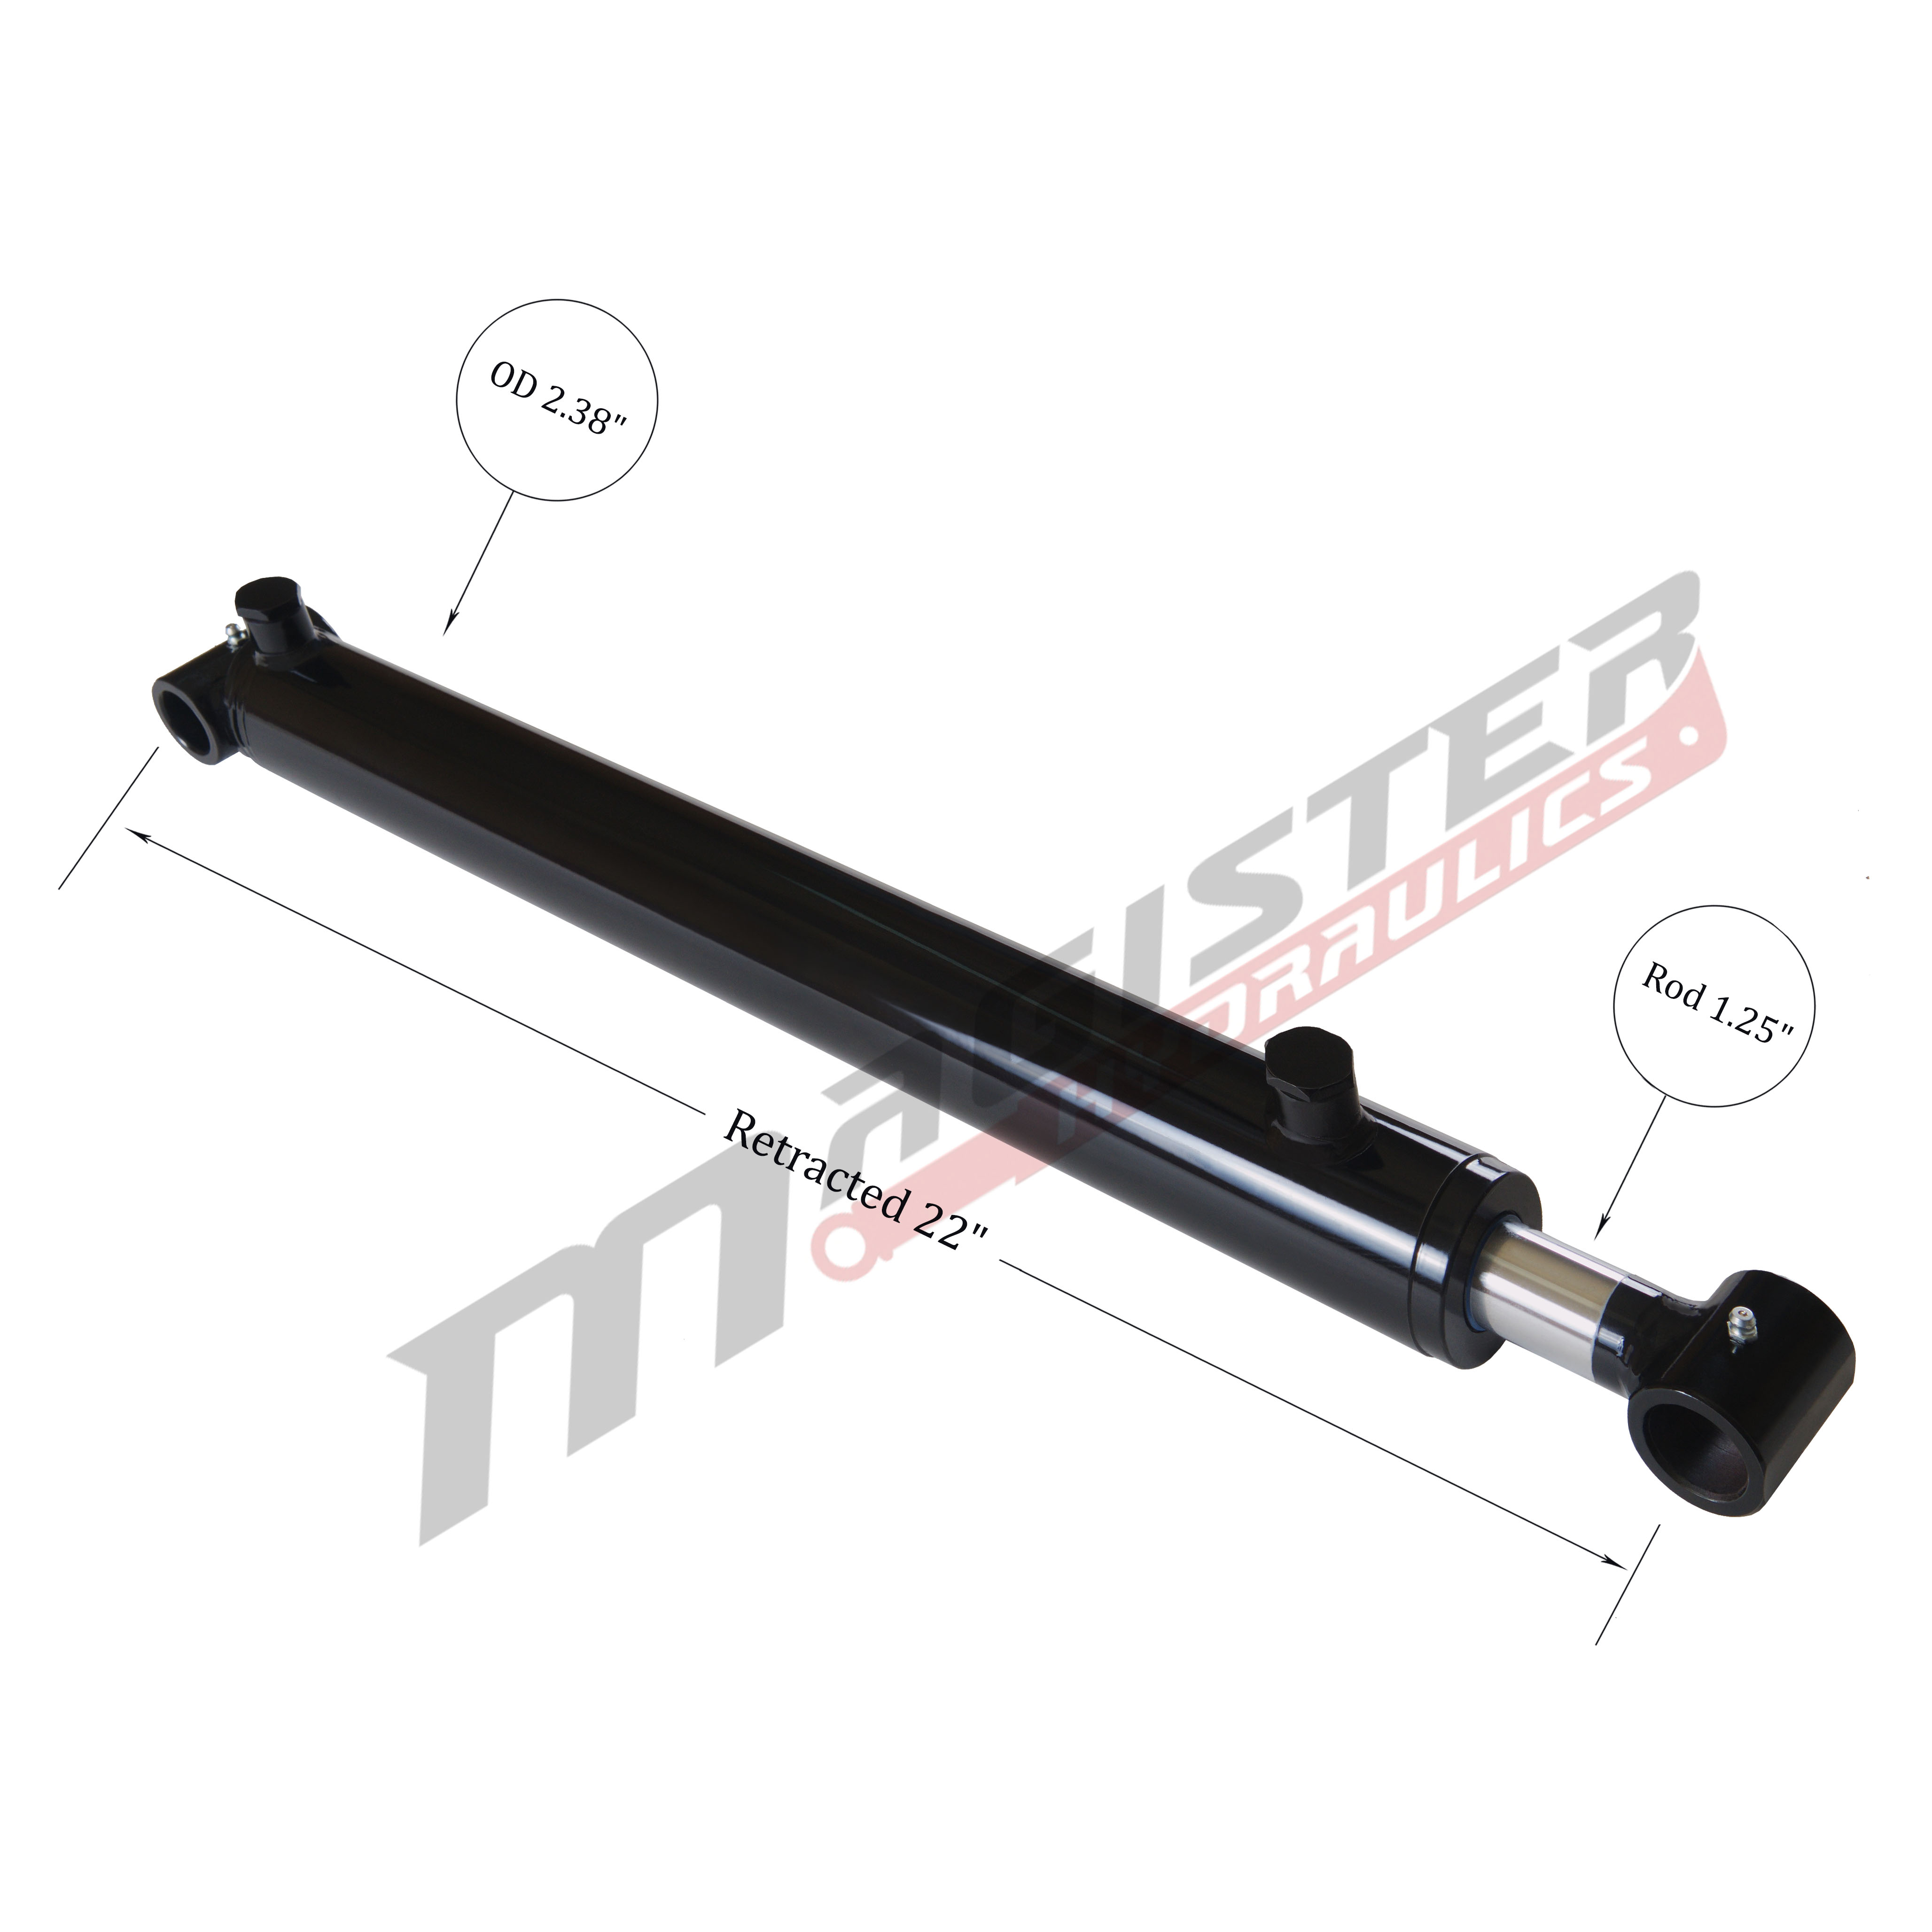 2 bore x 14 stroke hydraulic cylinder, welded cross tube double acting cylinder | Magister Hydraulics